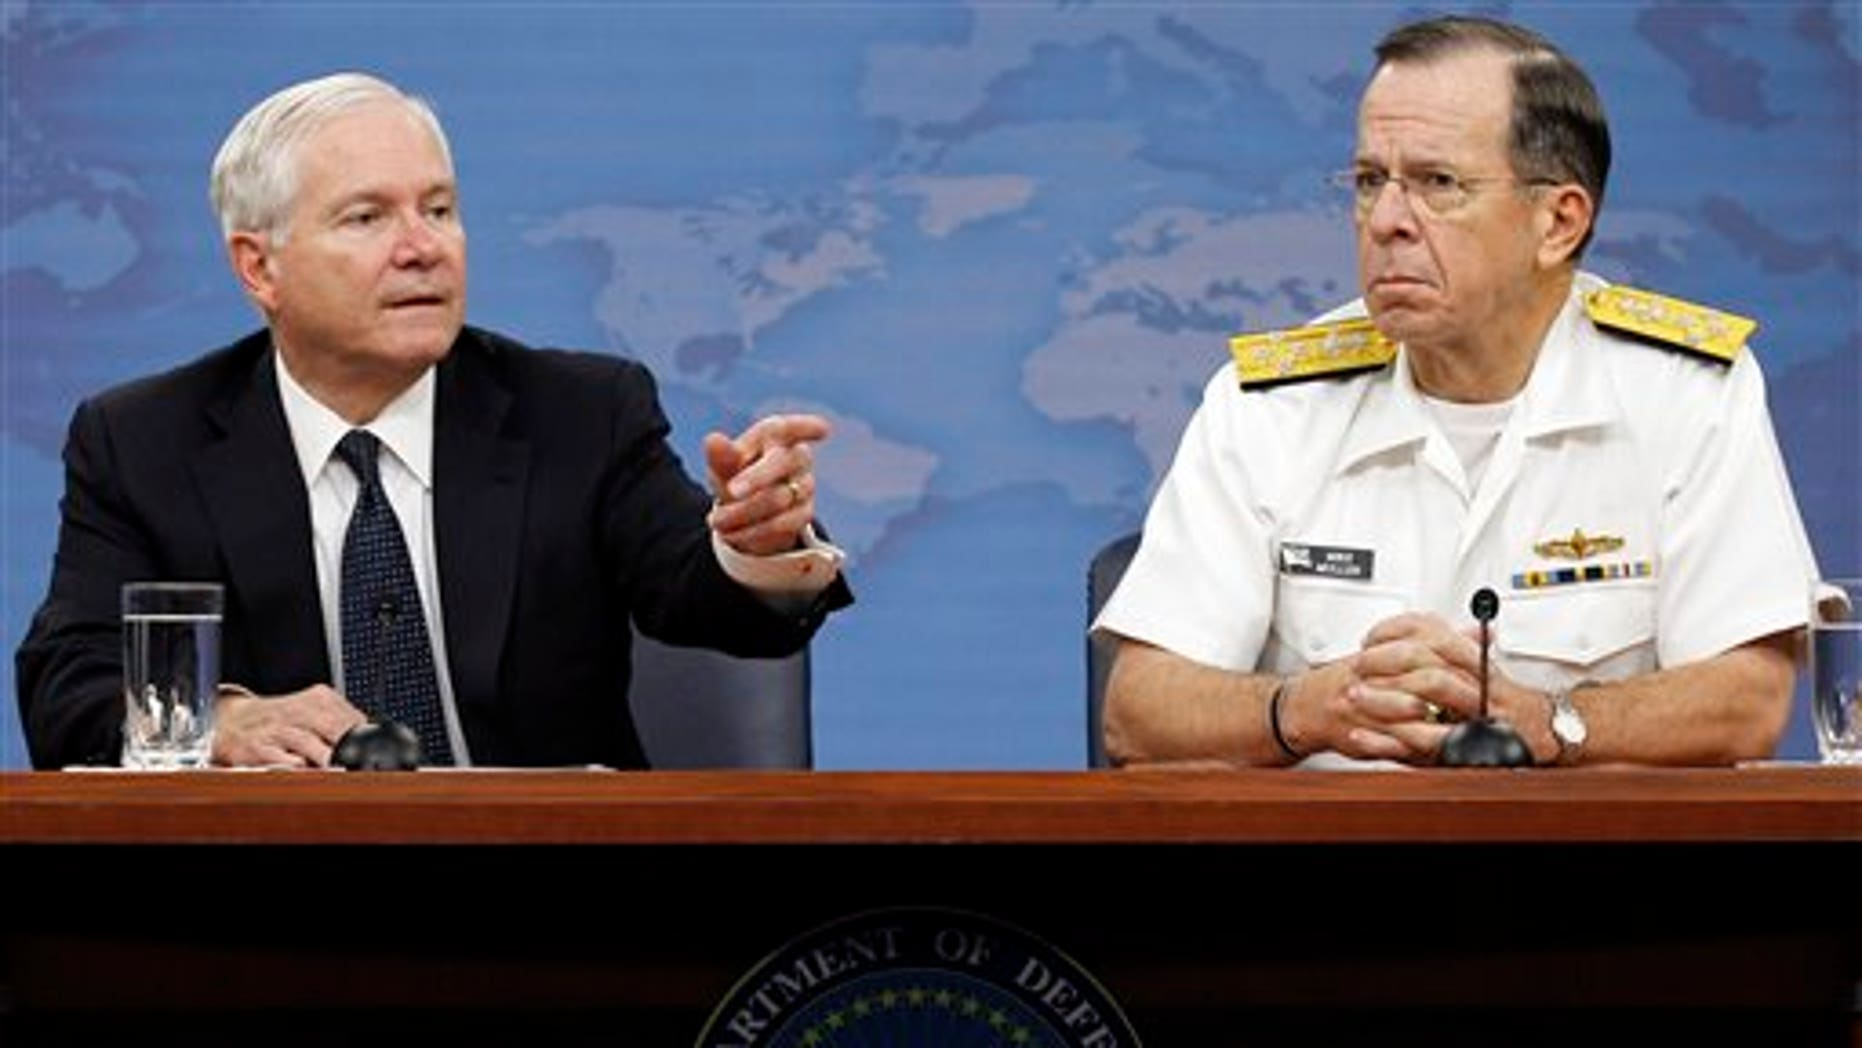 May 18: Secretary of Defense Robert M. Gates and Chairman of the Joint Chiefs of Staff Adm. Mike Mullen at the Pentagon in Washington.